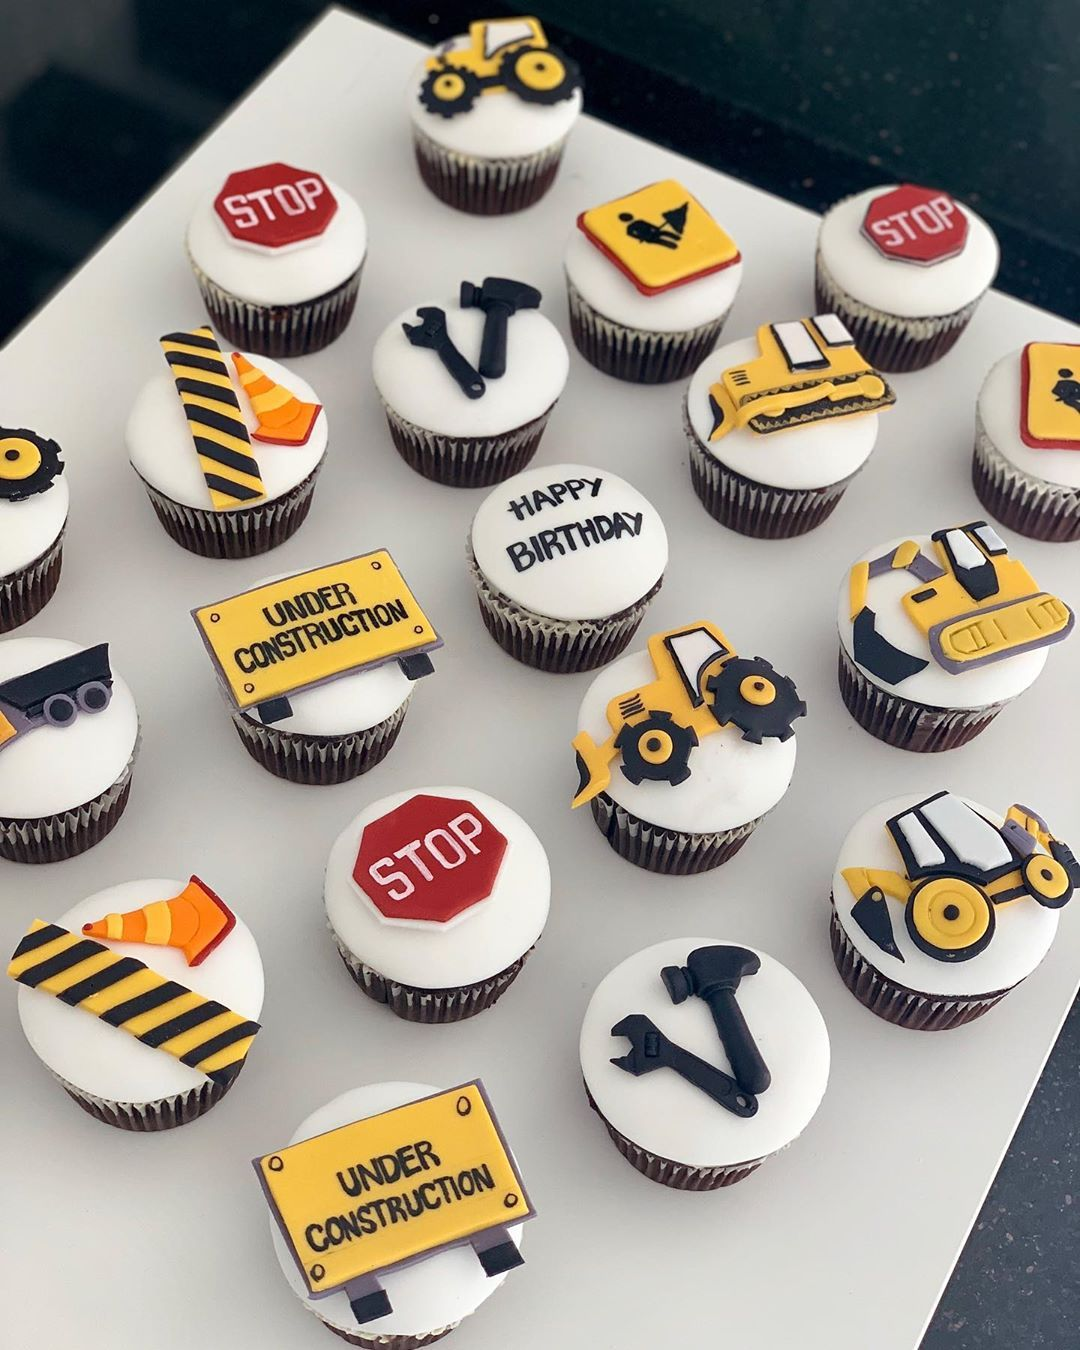 Construction Cupcakes Construction Themed Party Customized Cakes In Abu Dhabi كيك عيد ميلاد لل Construction Cake Construction Birthday Construction Theme